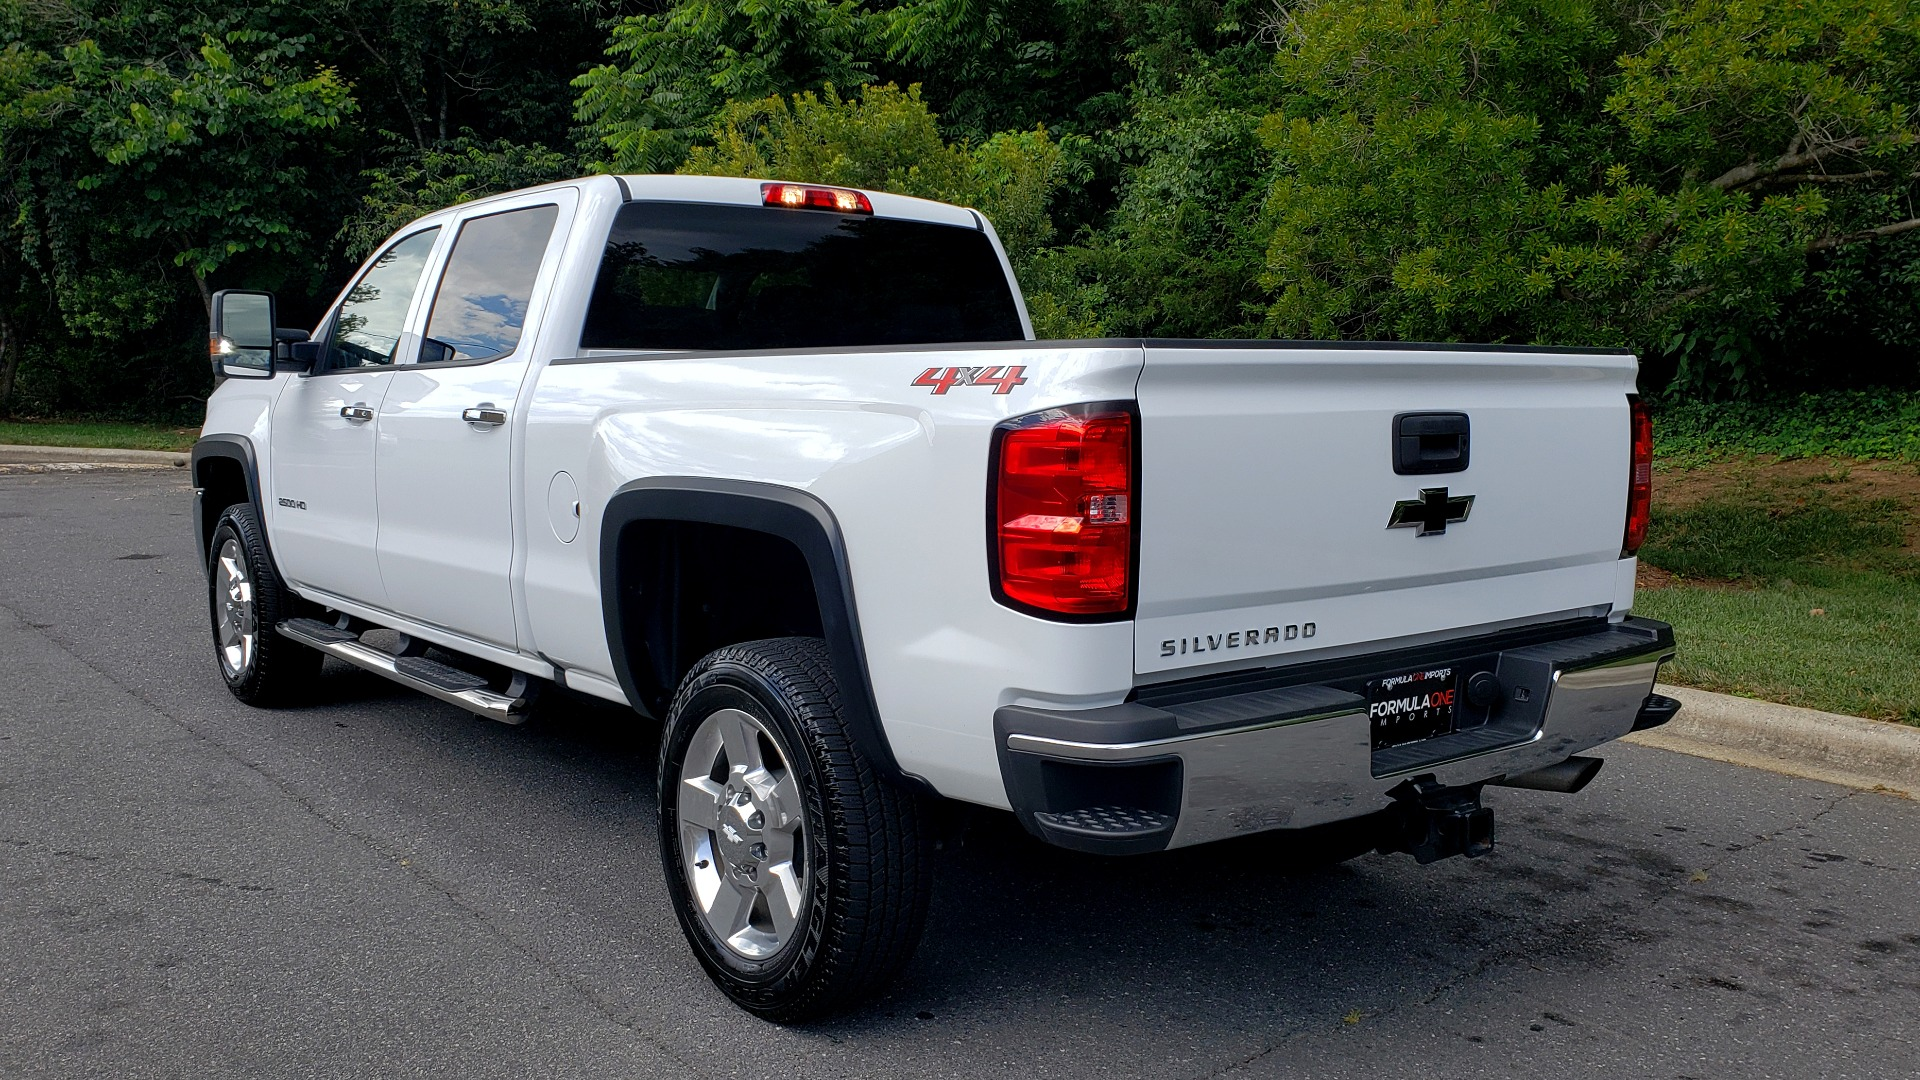 Used 2019 Chevrolet SILVERADO 2500HD WORK TRUCK / CREW CAB / 6.0L V8 / 4WD / BEDLINER for sale Sold at Formula Imports in Charlotte NC 28227 3